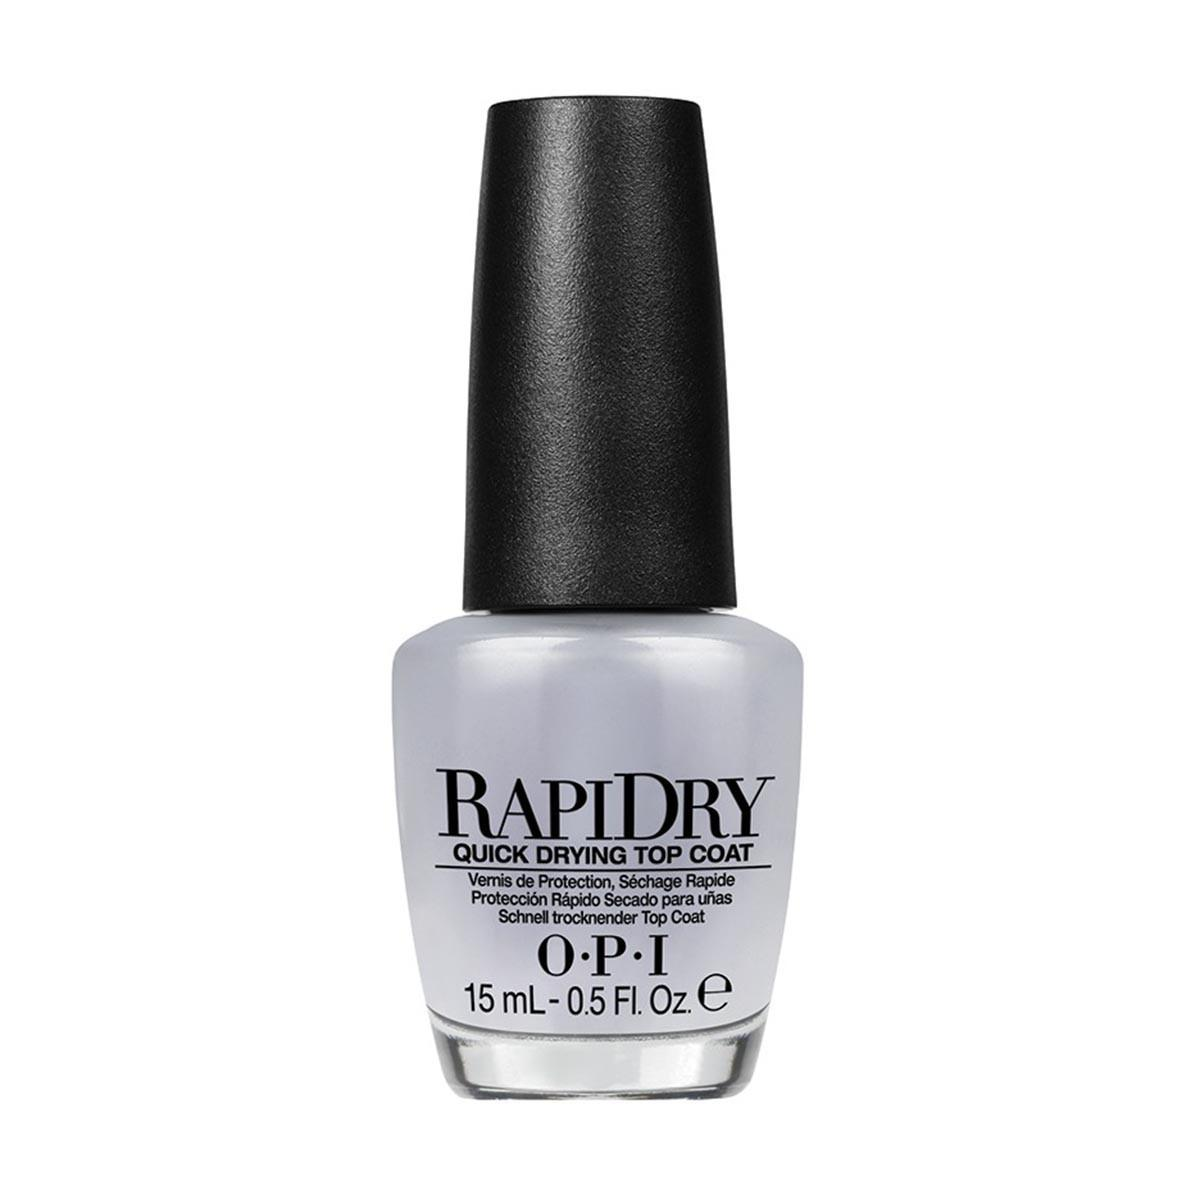 Opi Rapidry Quick Drying Top Coat 15 ml